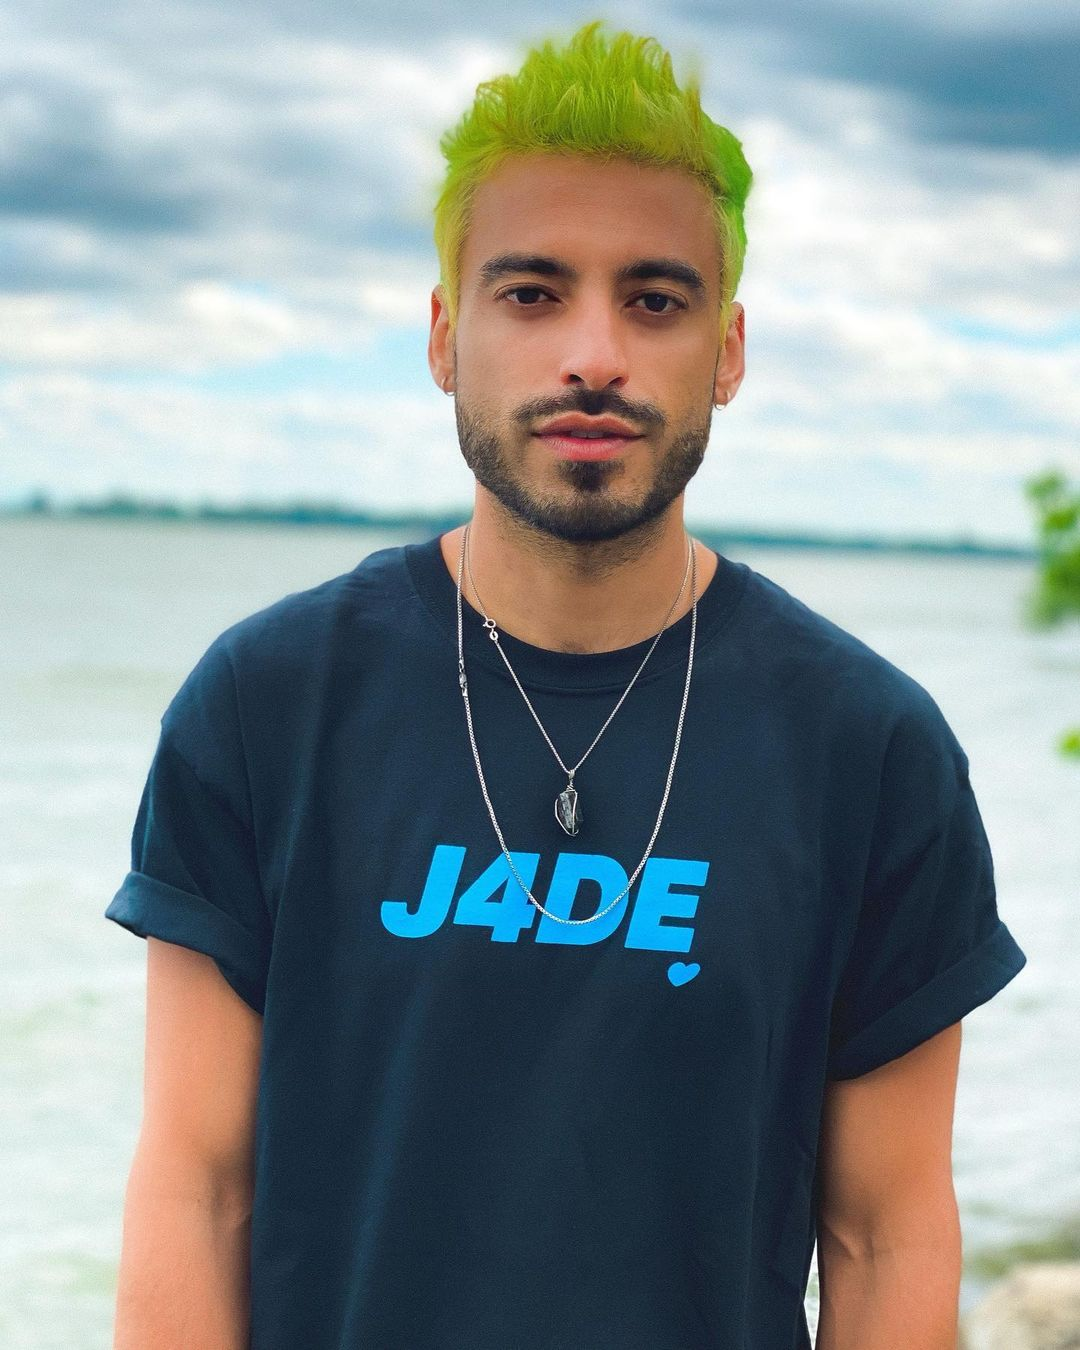 Jade Hassouné Canadian Actor, Dancer, Singer